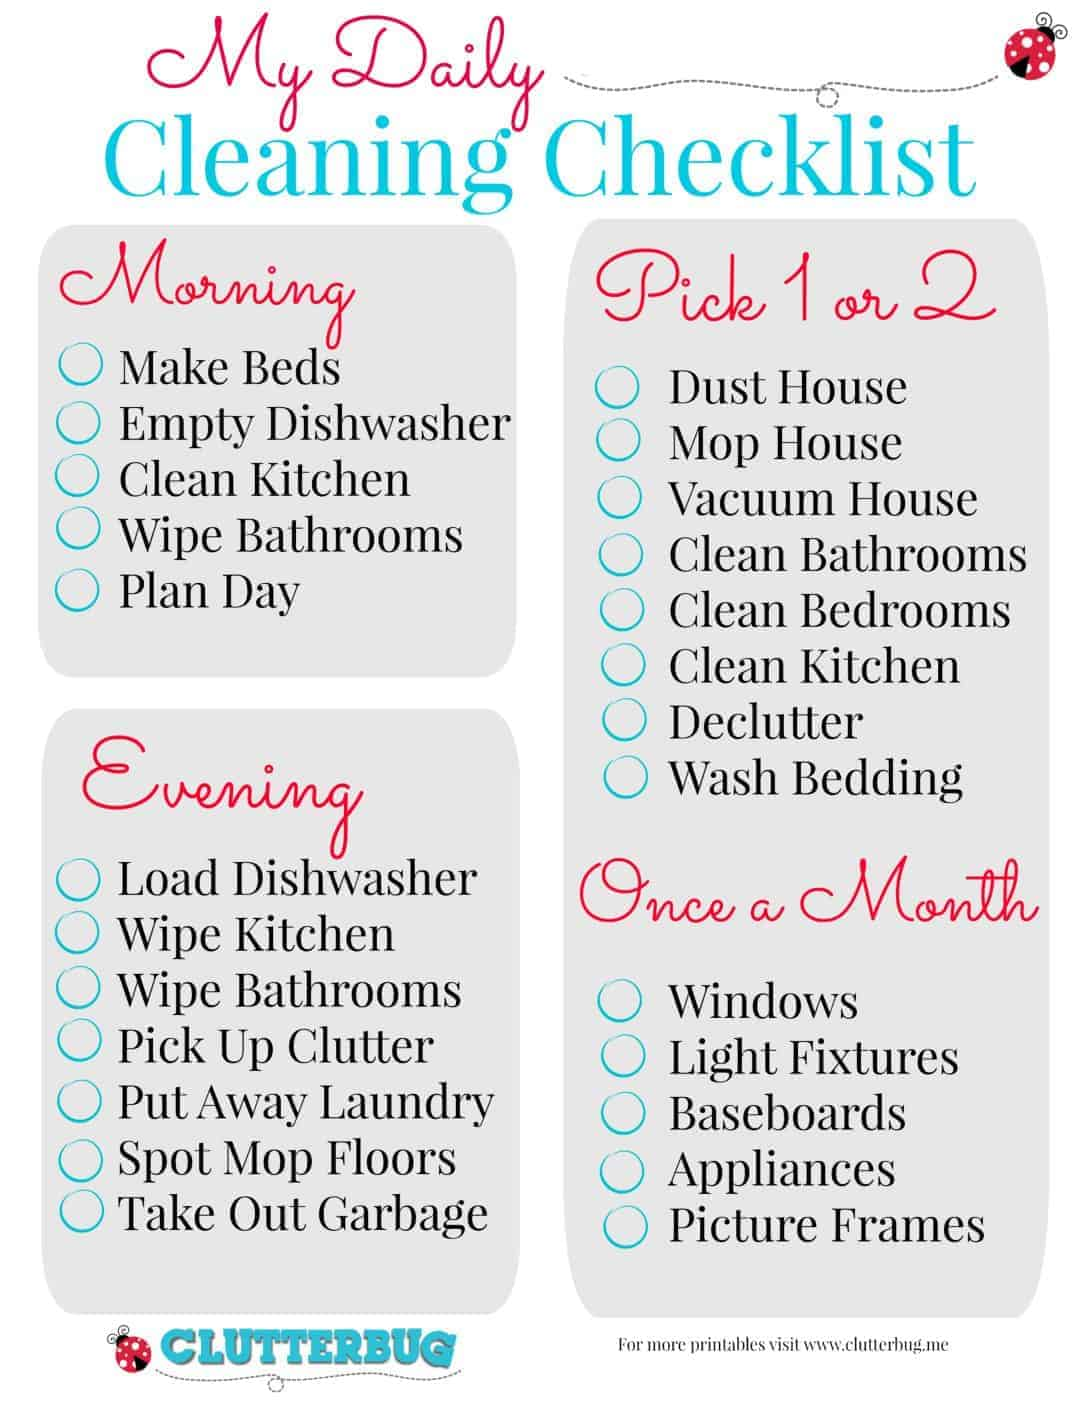 My Daily Cleaning Checklist